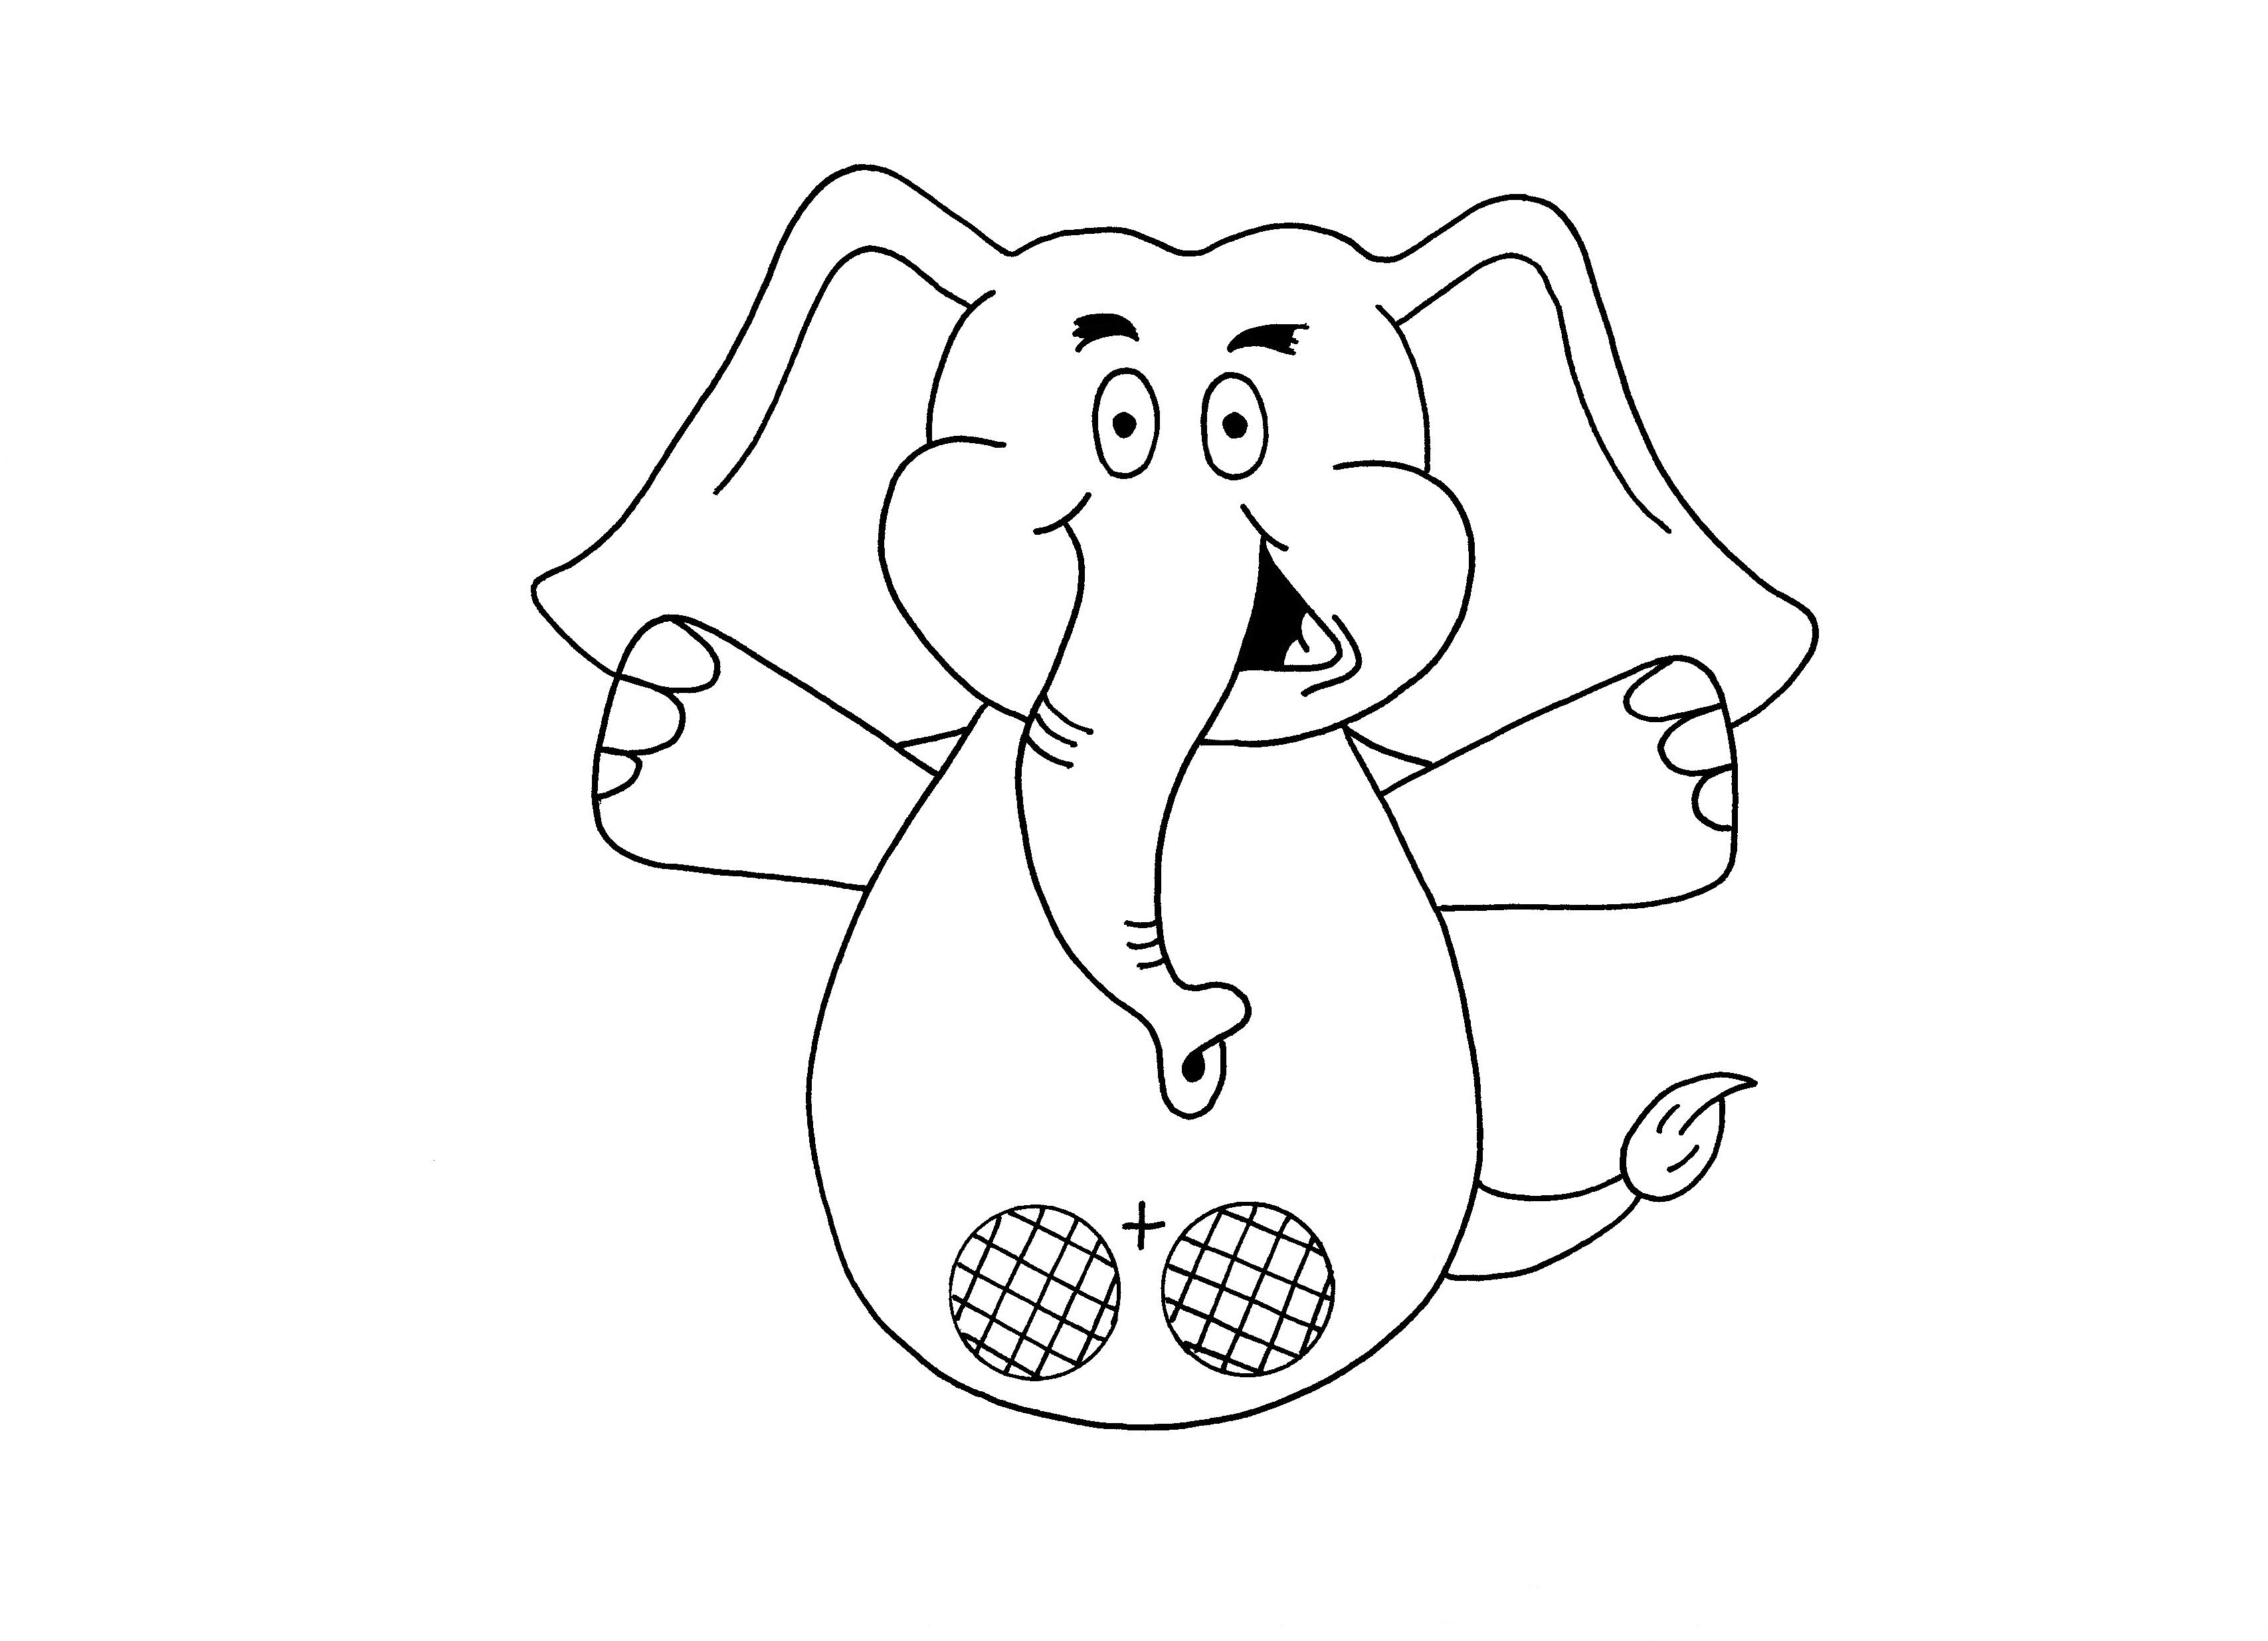 paper finger puppets templates - printable elephant puppet bing images